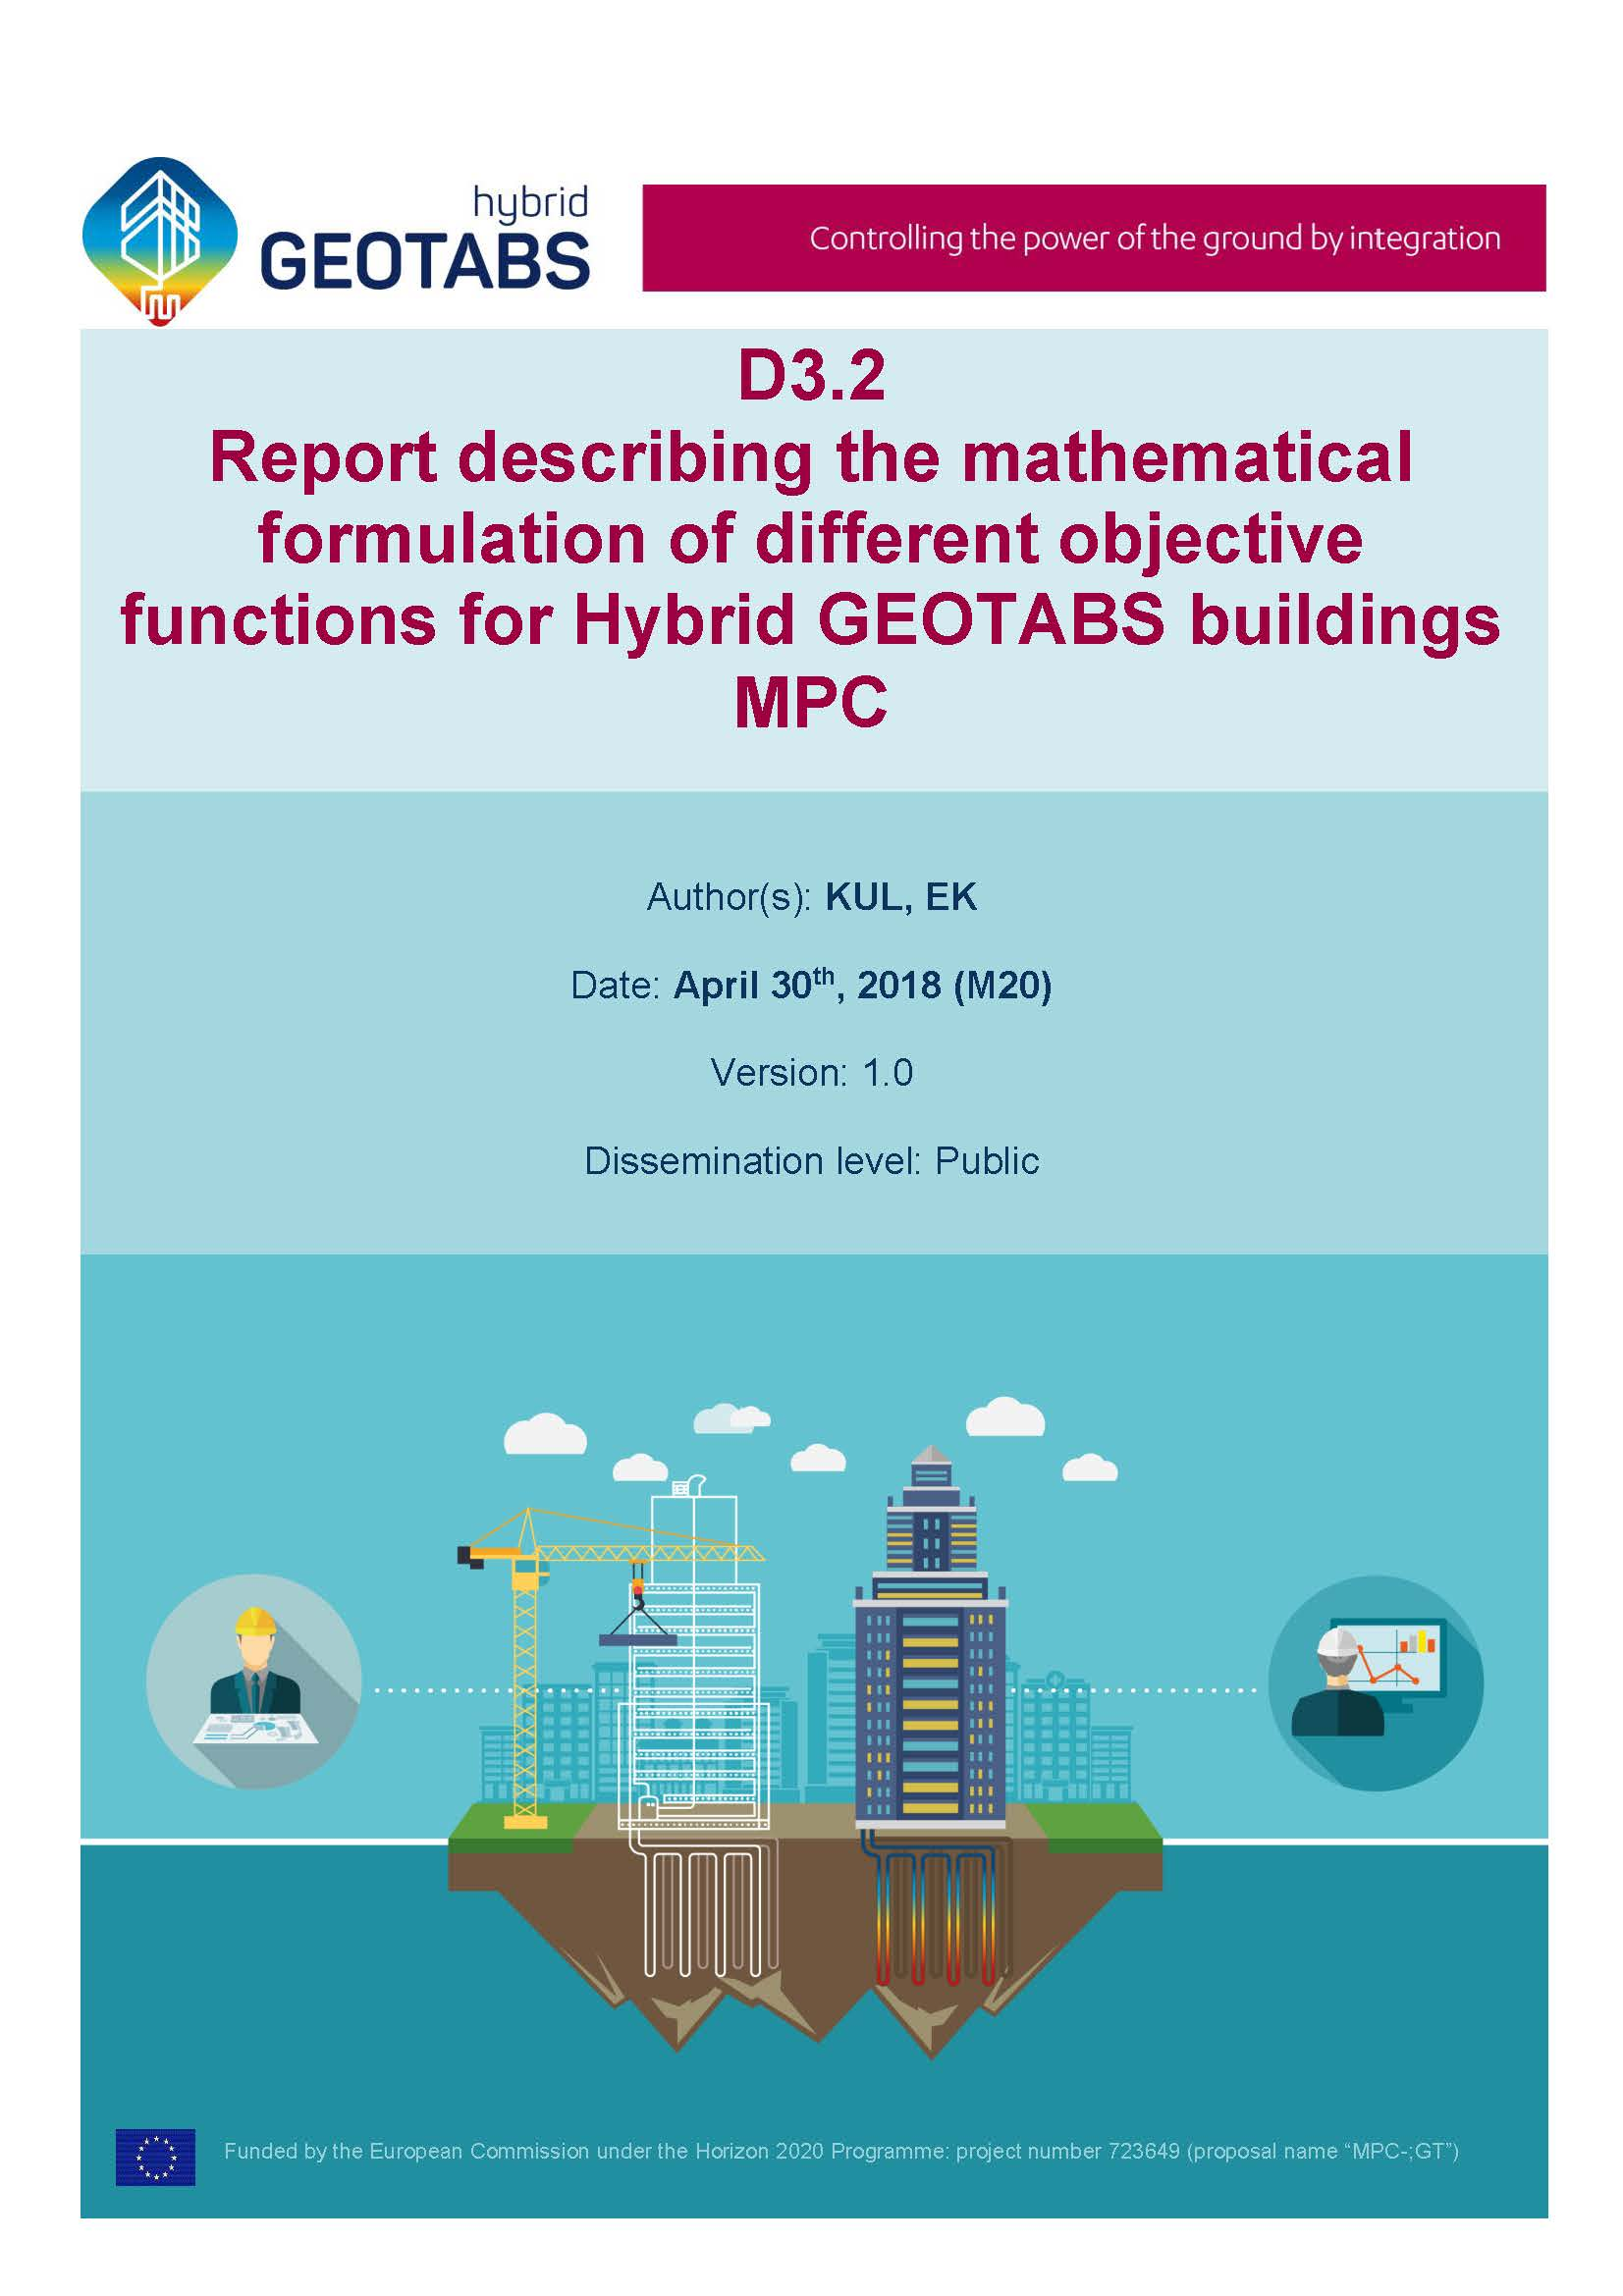 D3.2 front cover